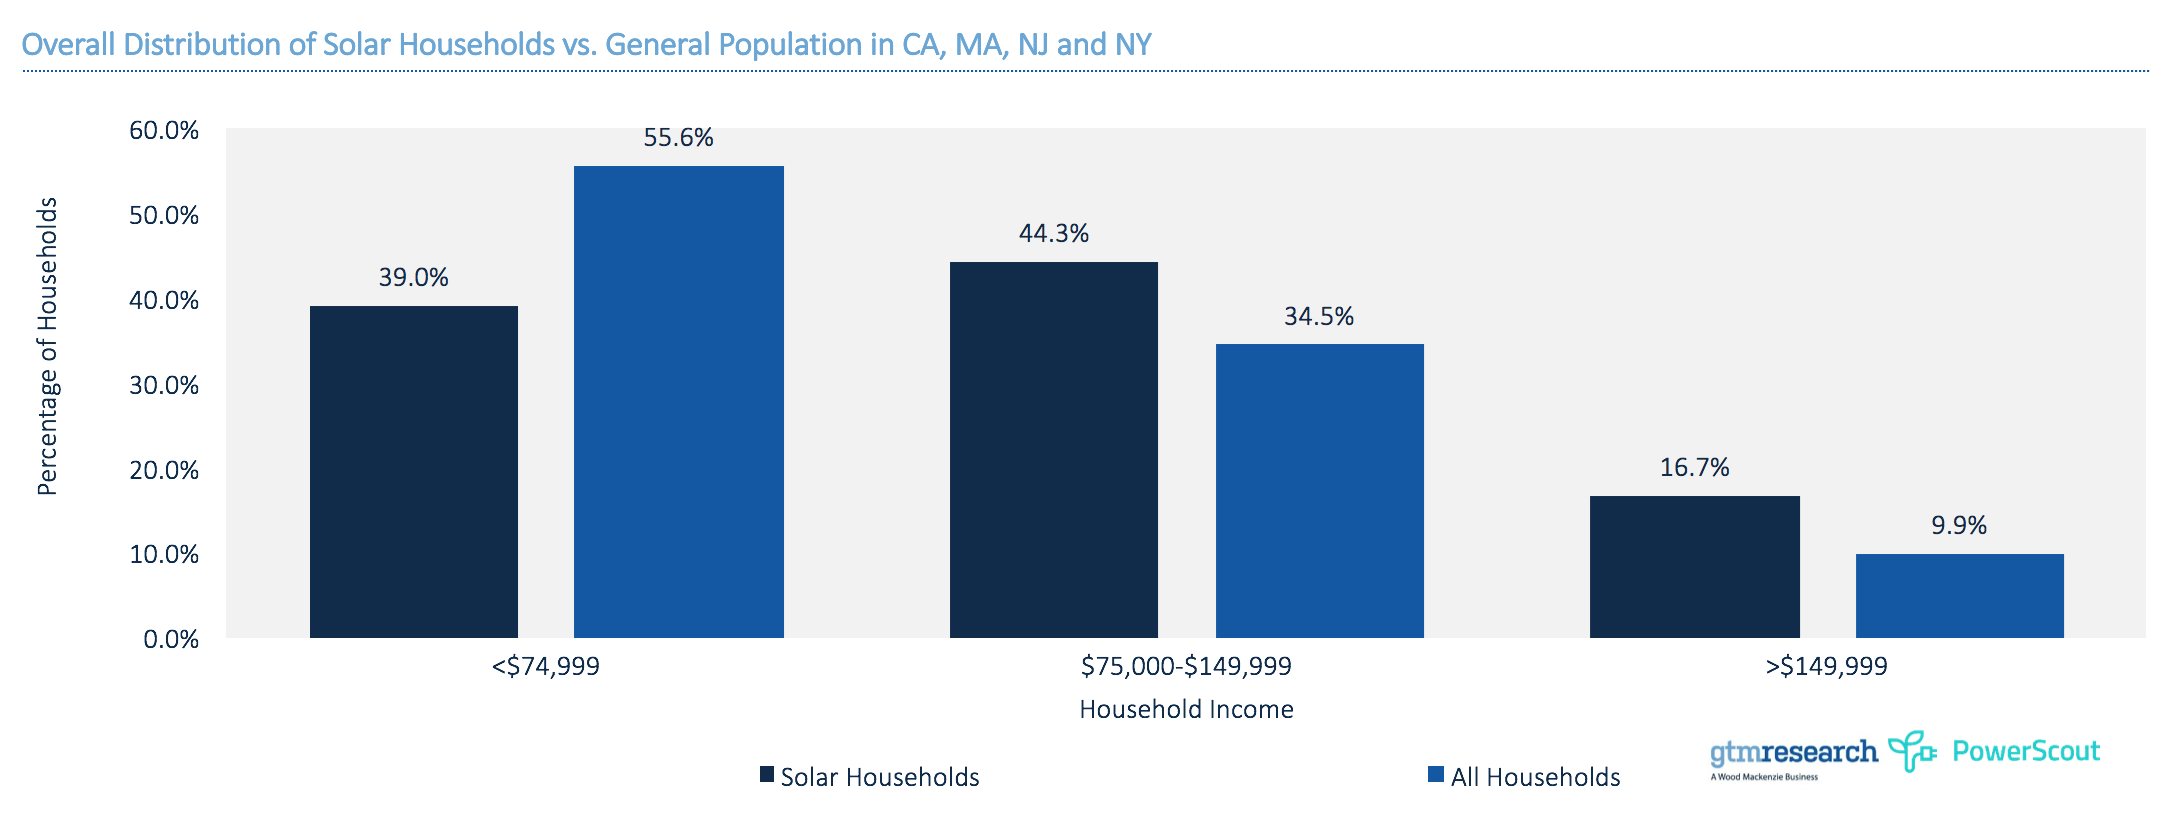 Overall distribution of solar households vs. general population in CA, MA, NJ and NY. Source: GTM Research and PowerScout